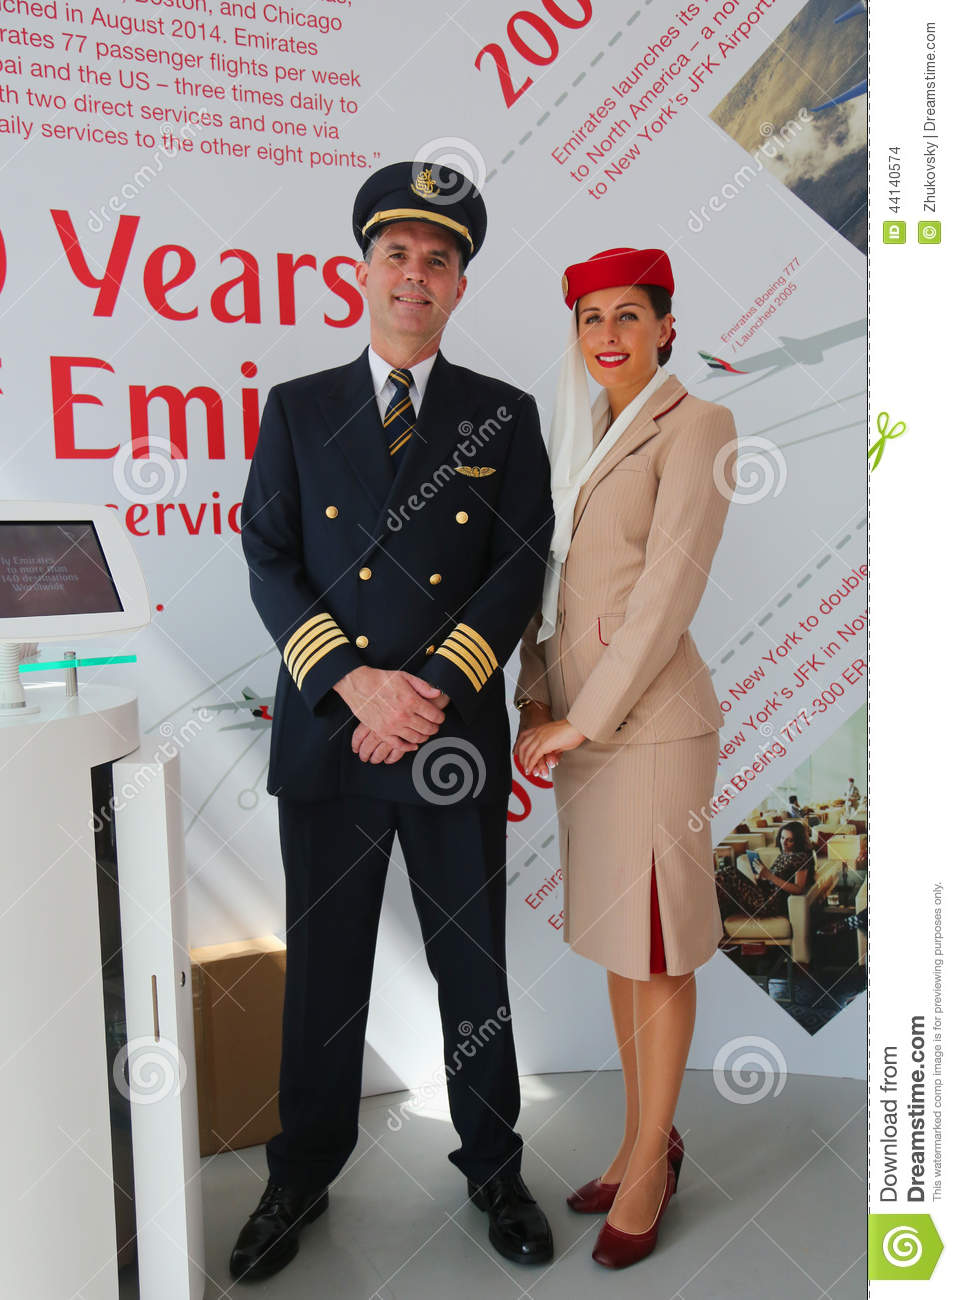 Emirates Airlines Pilot And Flight Attendant At The Emirates